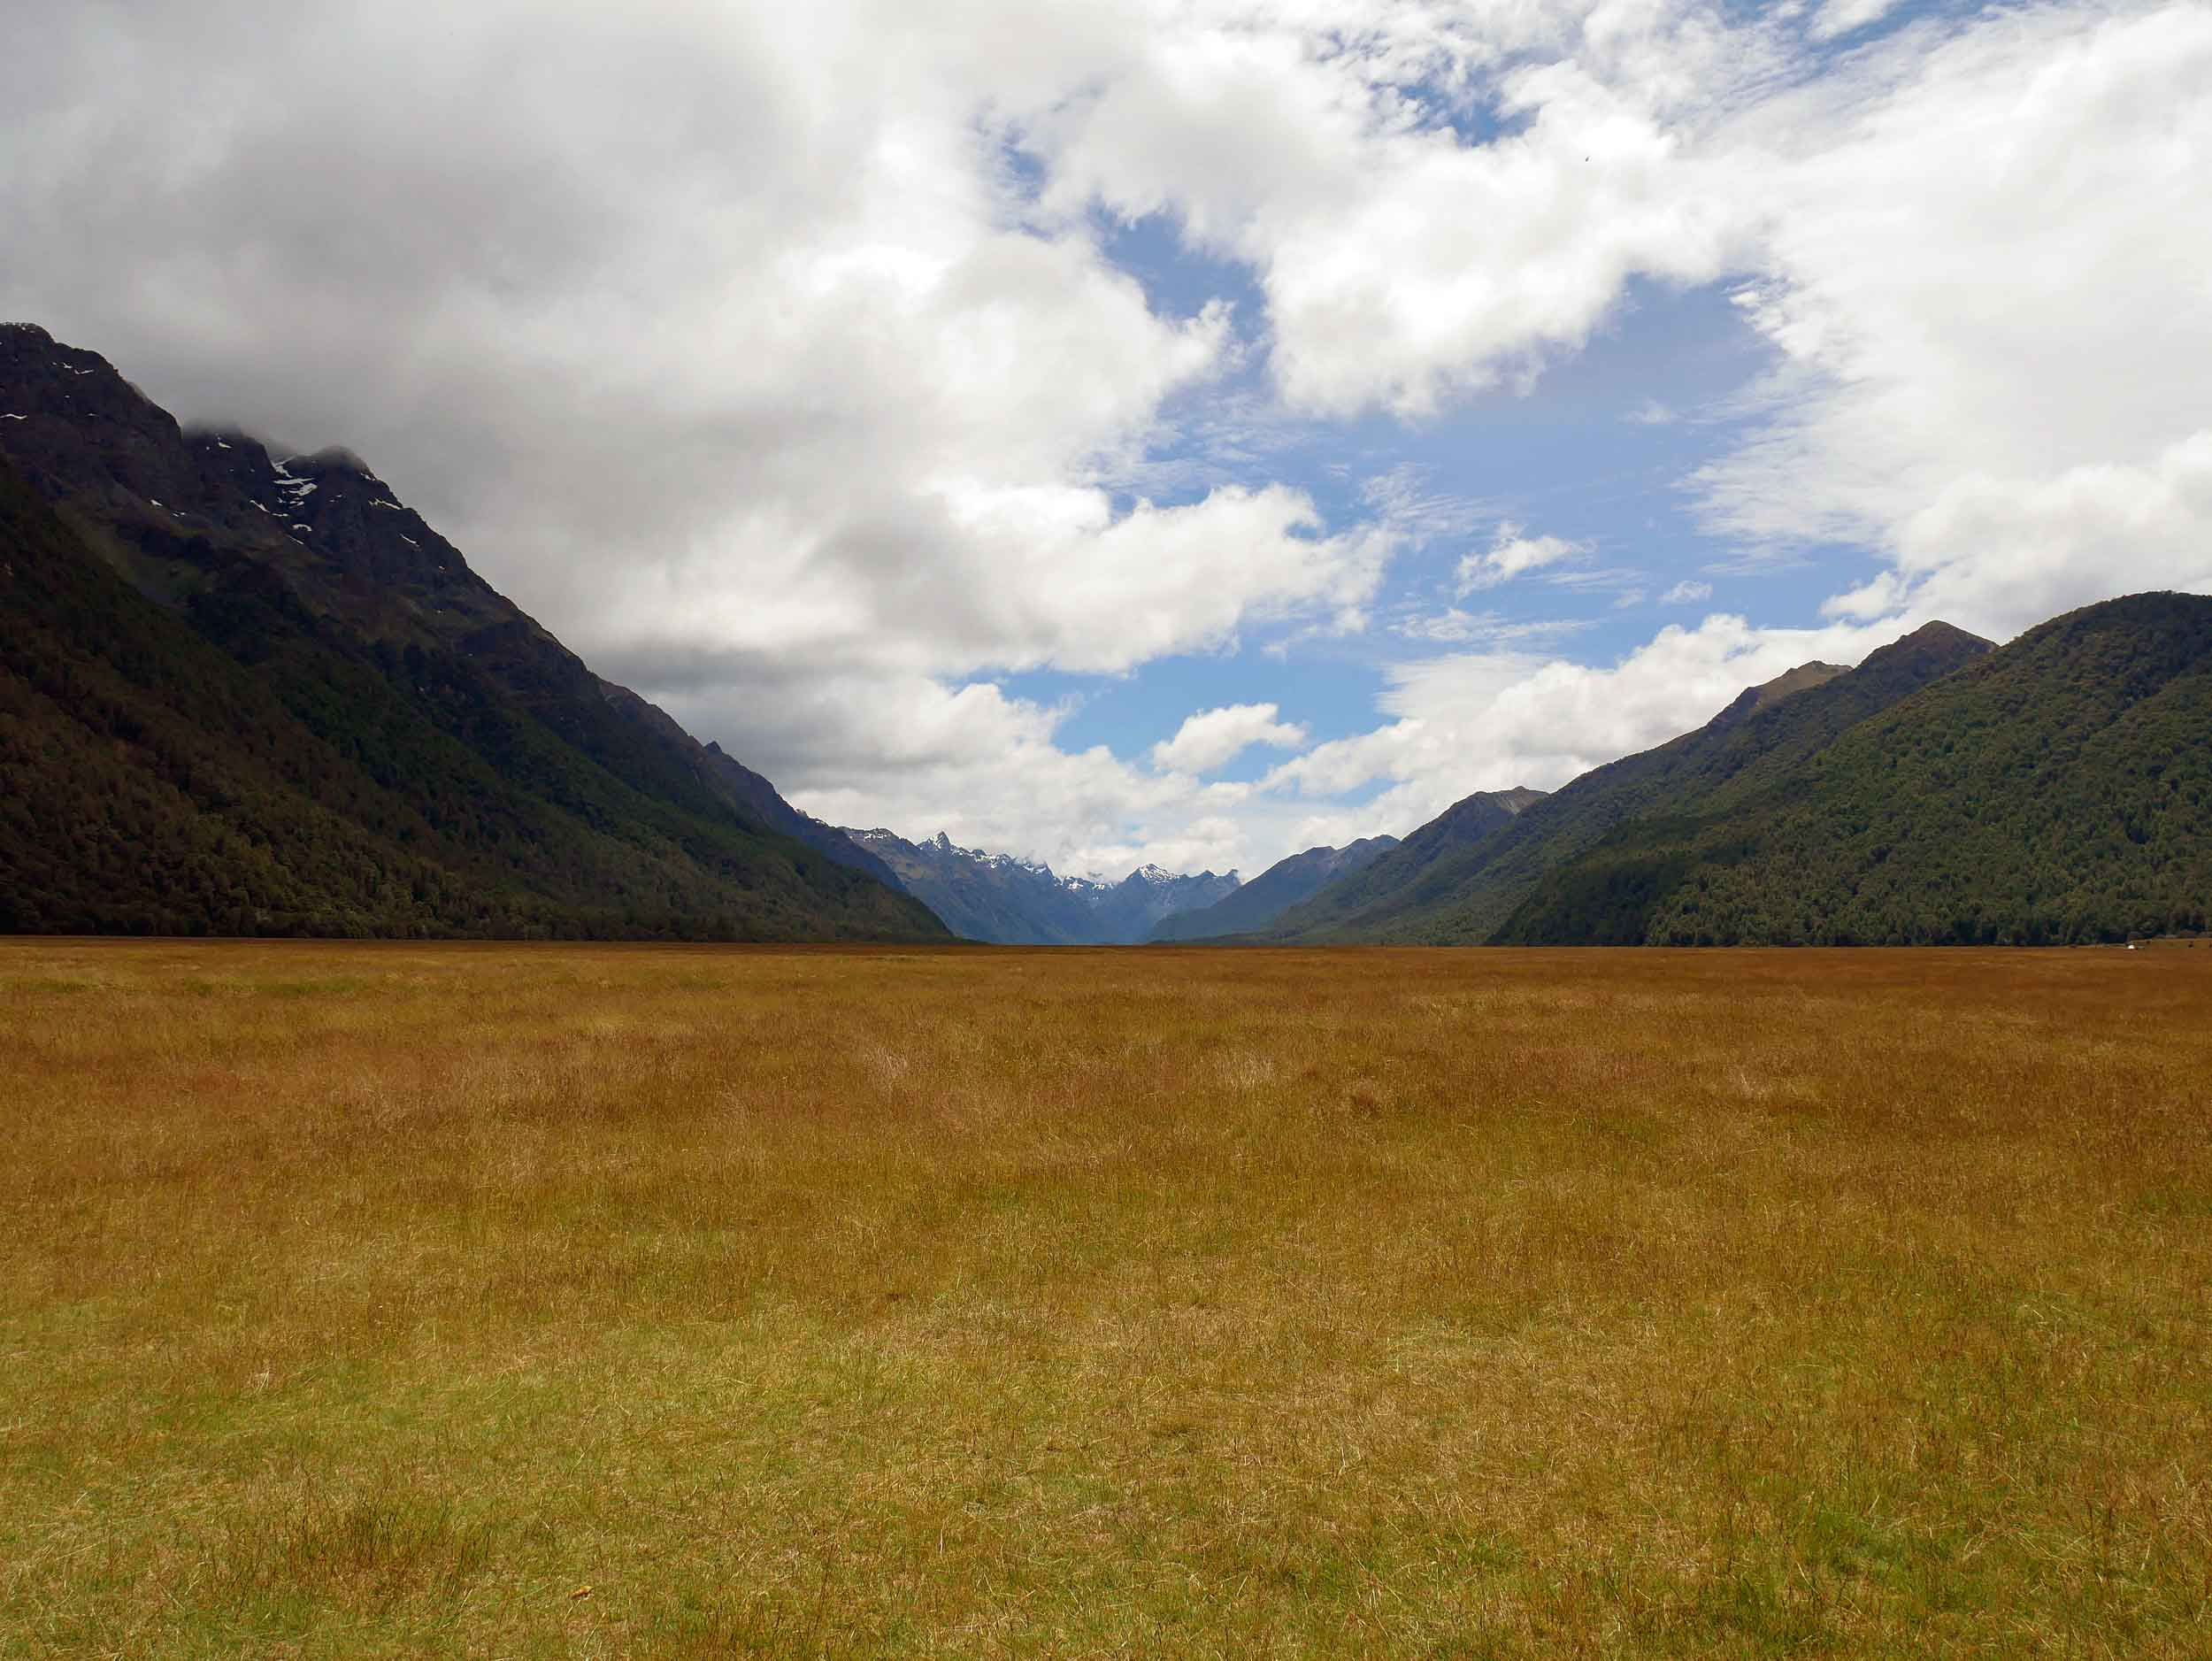 Along the Milford Road, we stopped and camped overnight in Eglinton Valley, once filled with glacial ice (Jan 8).